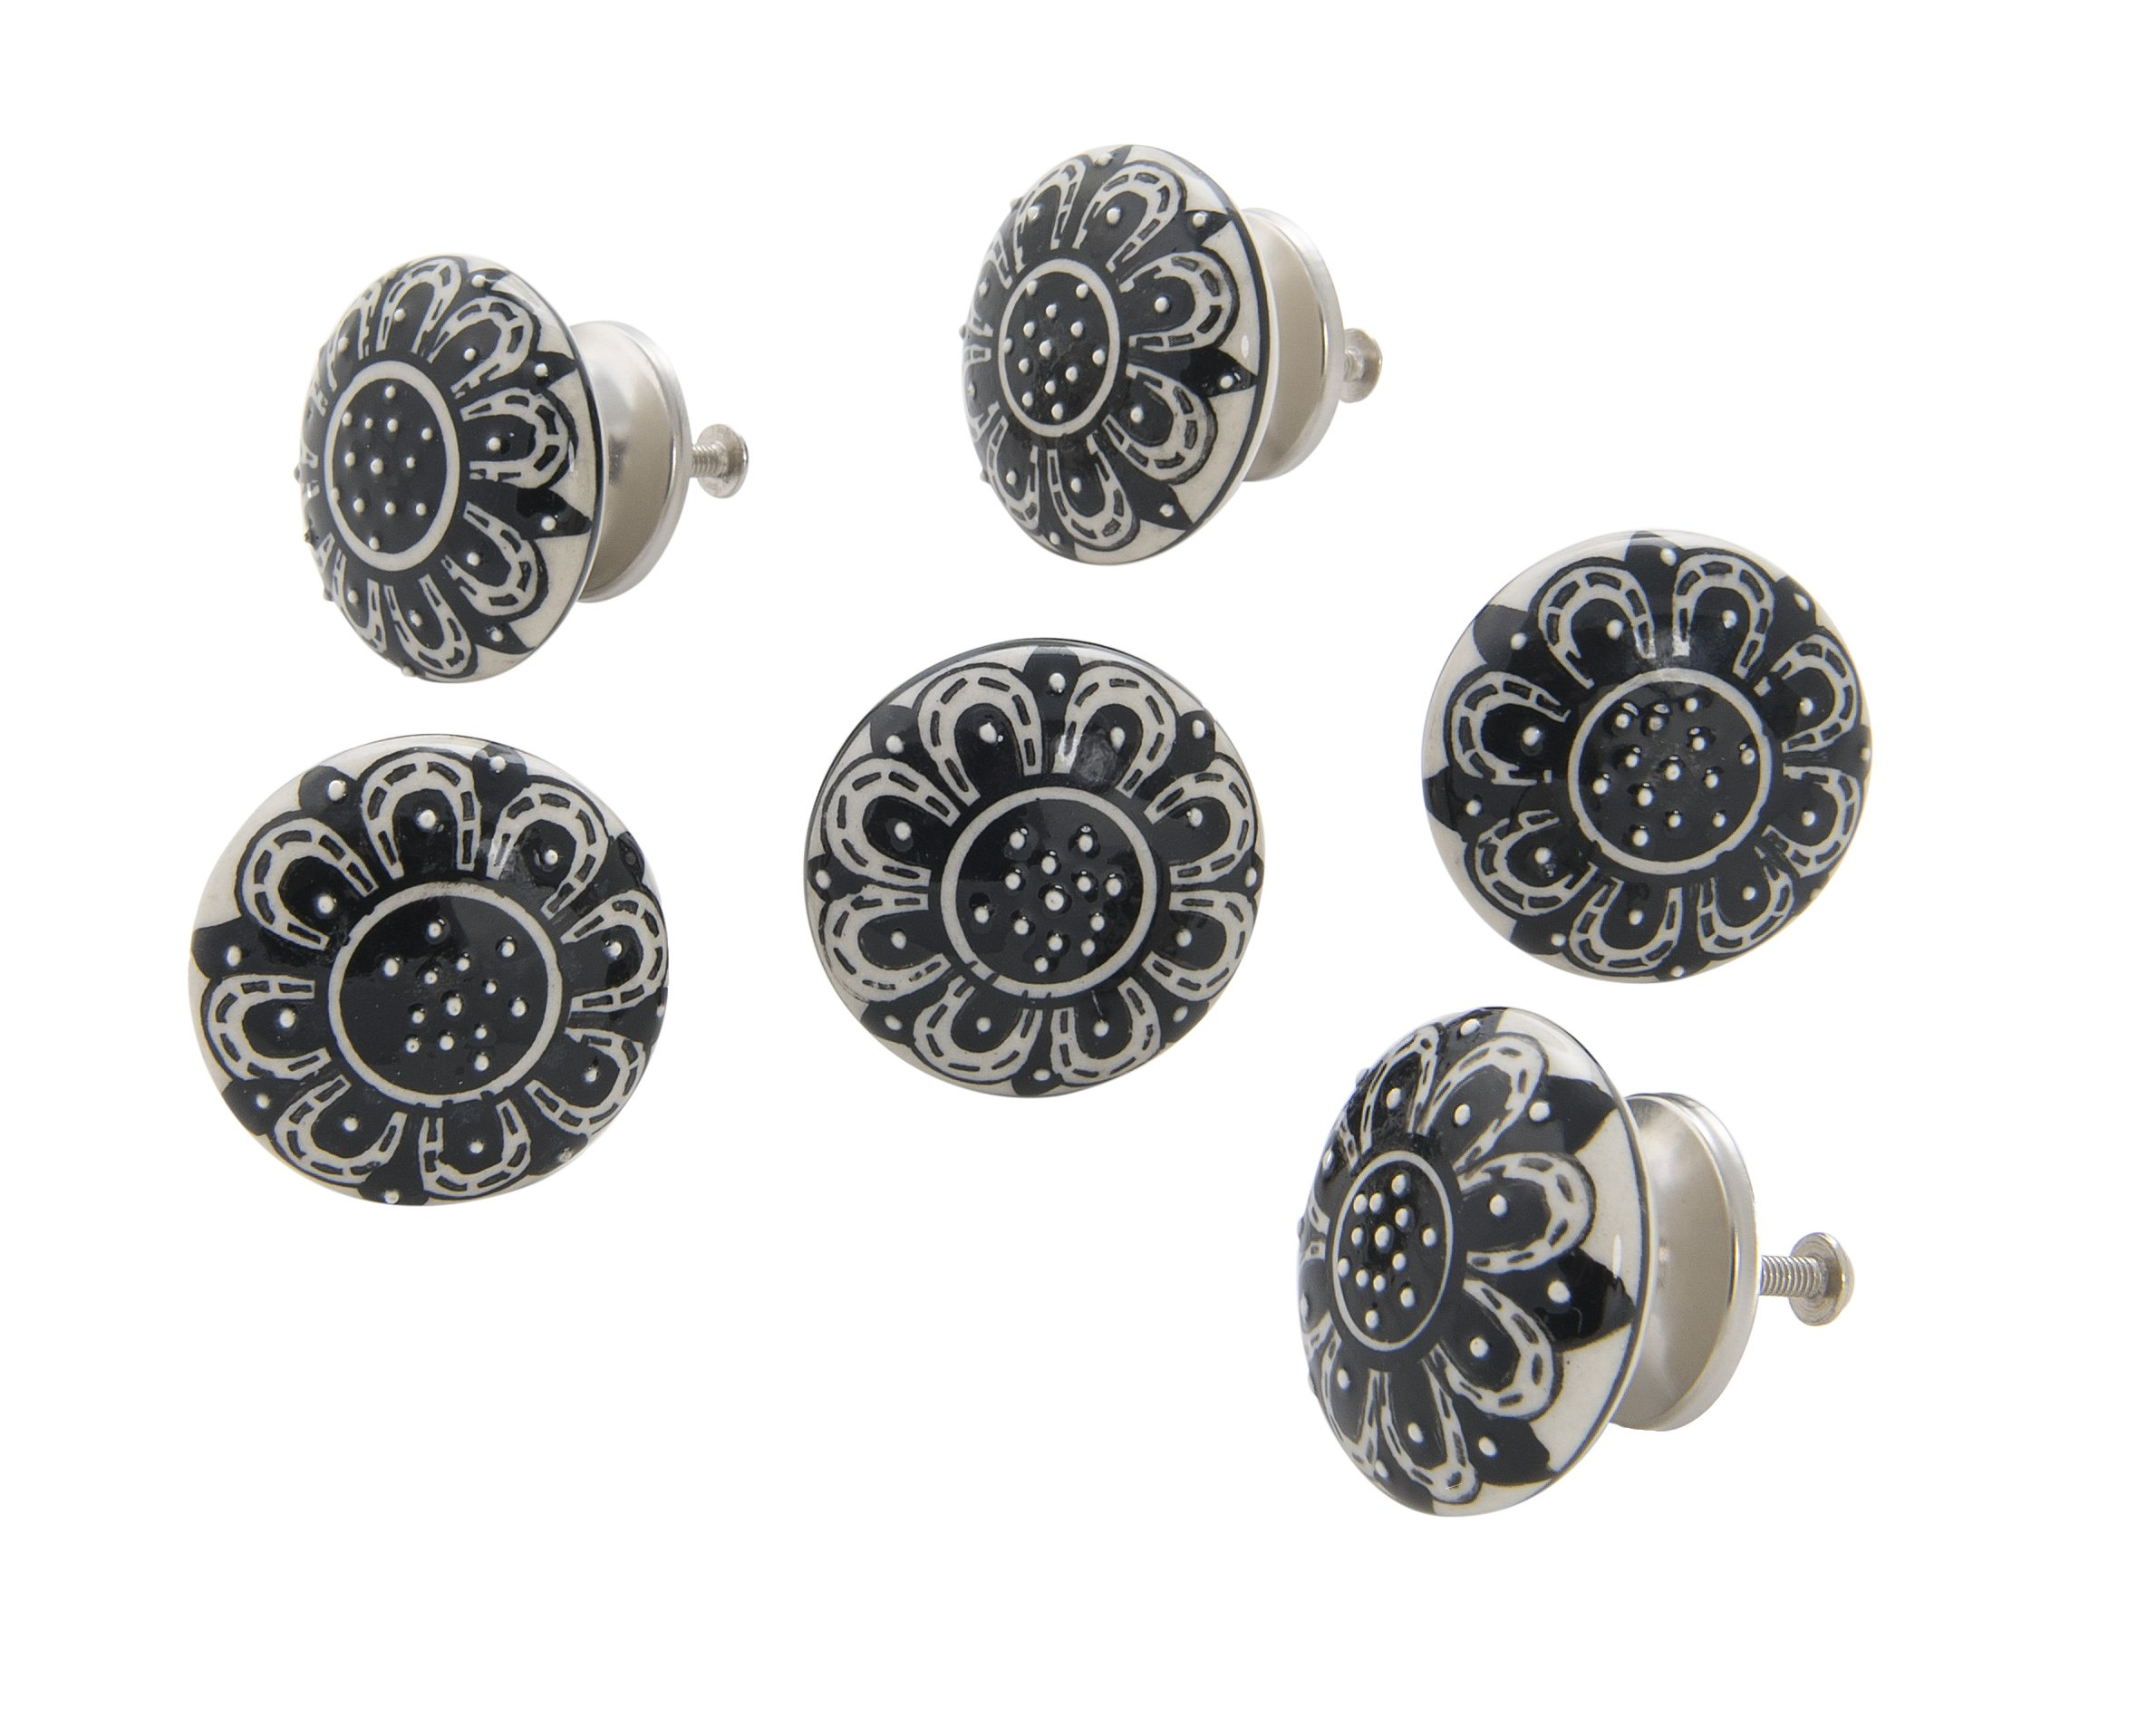 Dritz Home 47071A Ceramic Hand Painted Disk Knob Handcrafted Knobs for Cabinets & Drawers